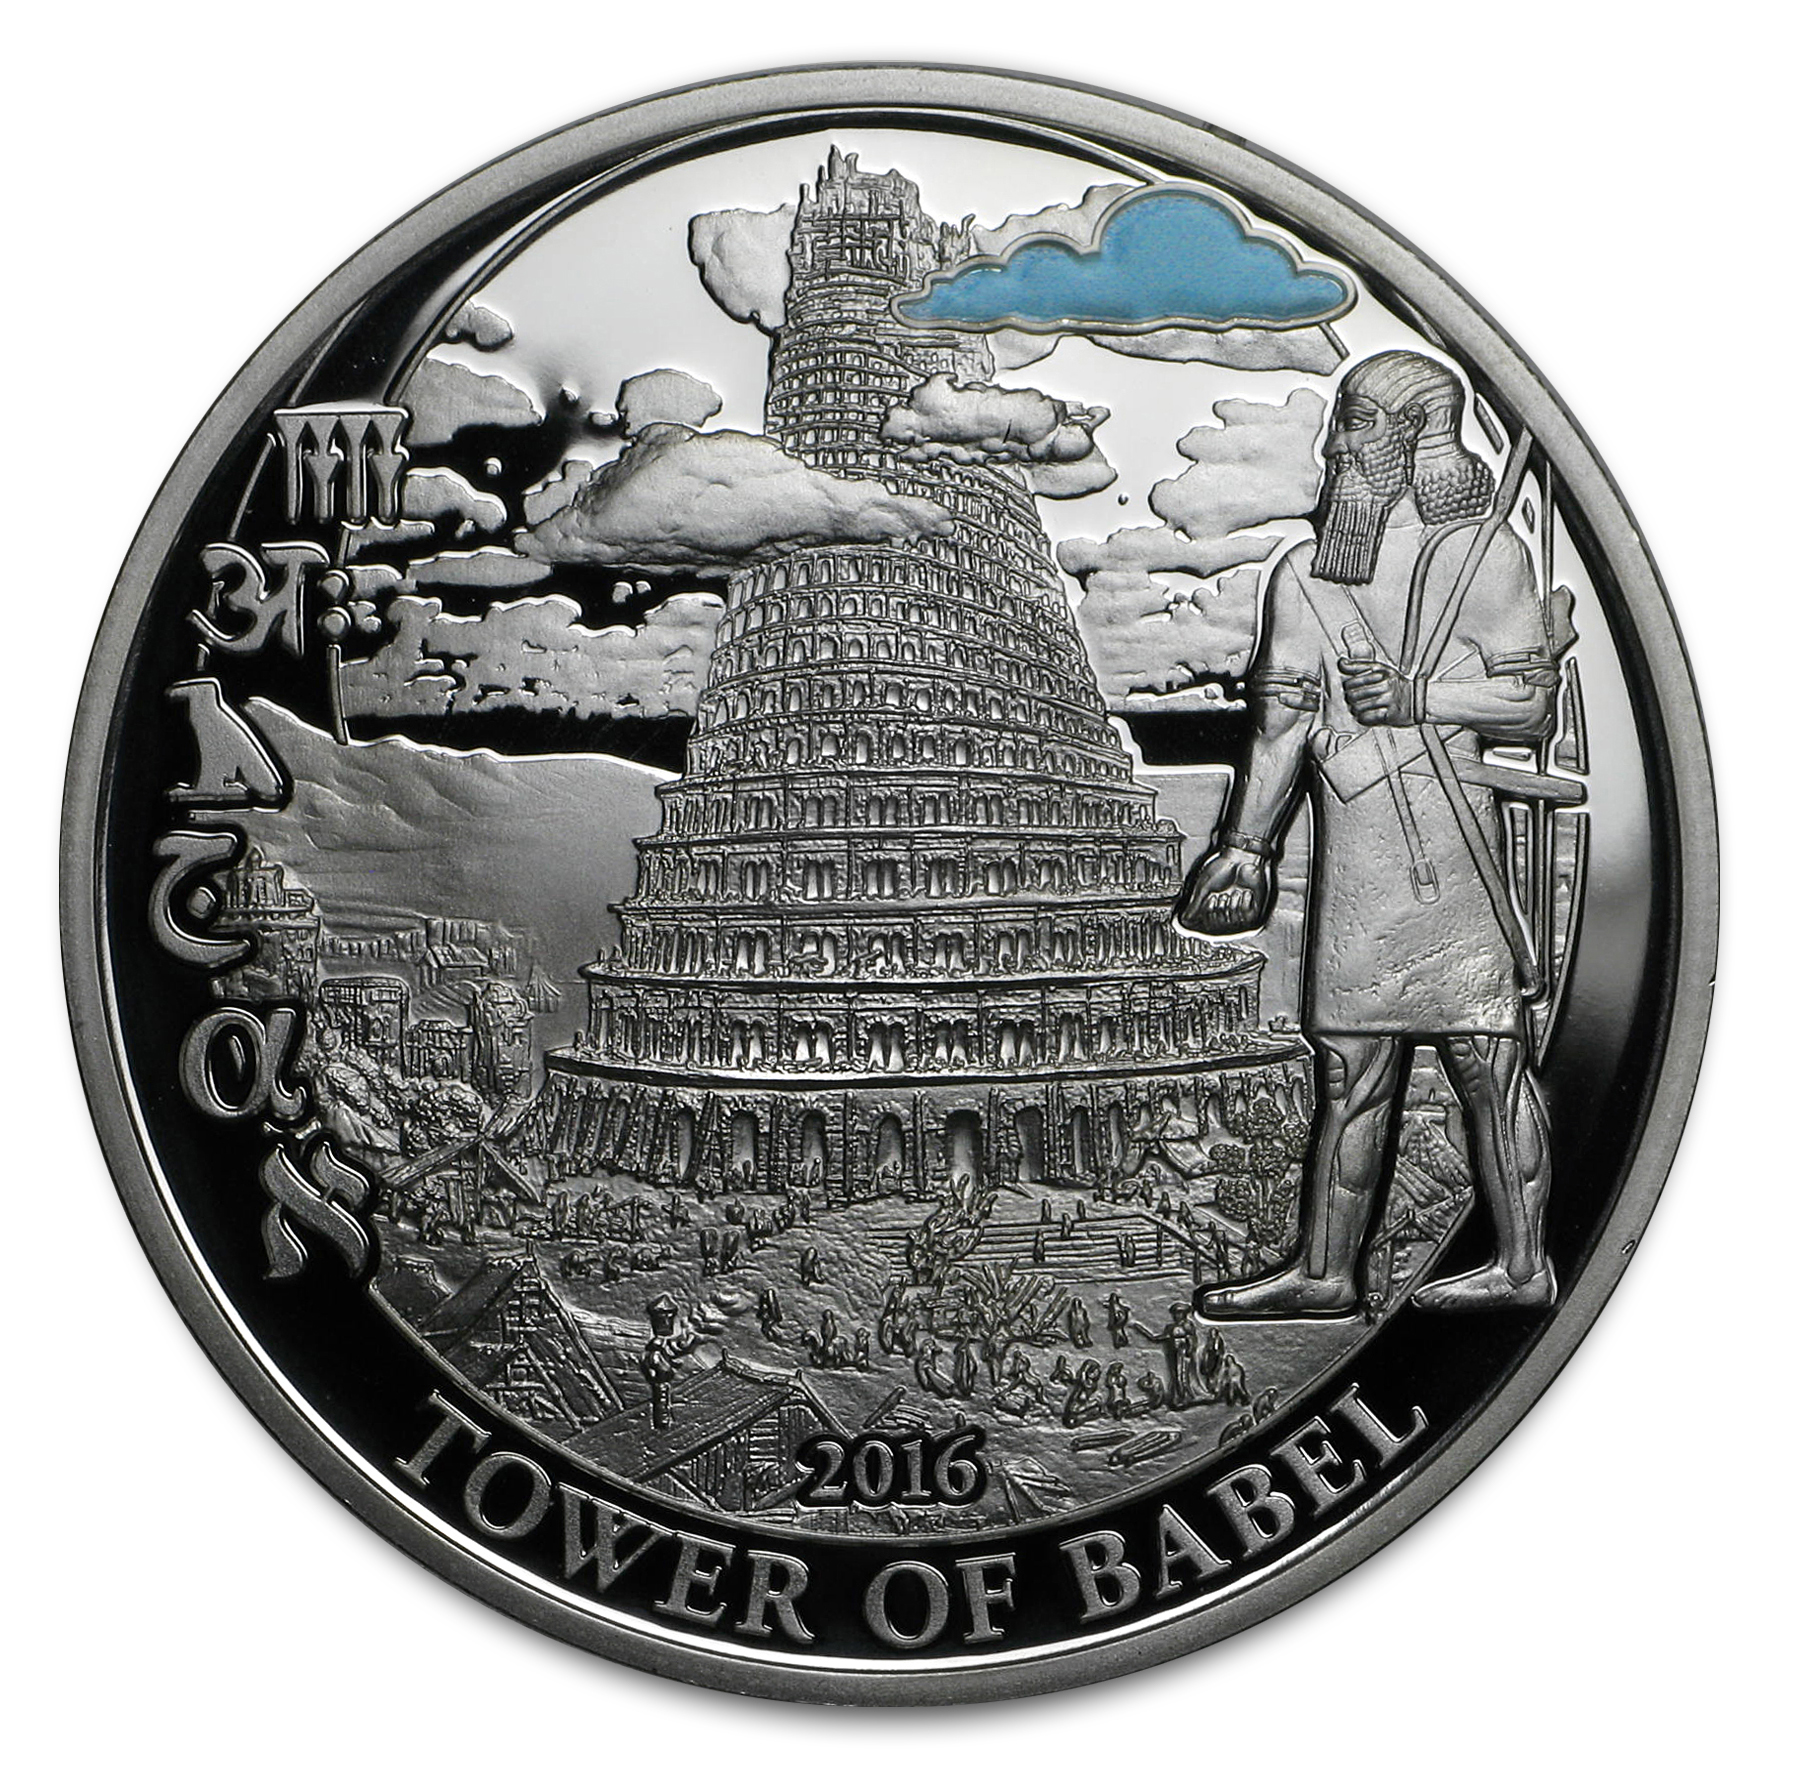 2016 Palau Proof 2-Coin Silver Biblical Stories (Tower of Babel)